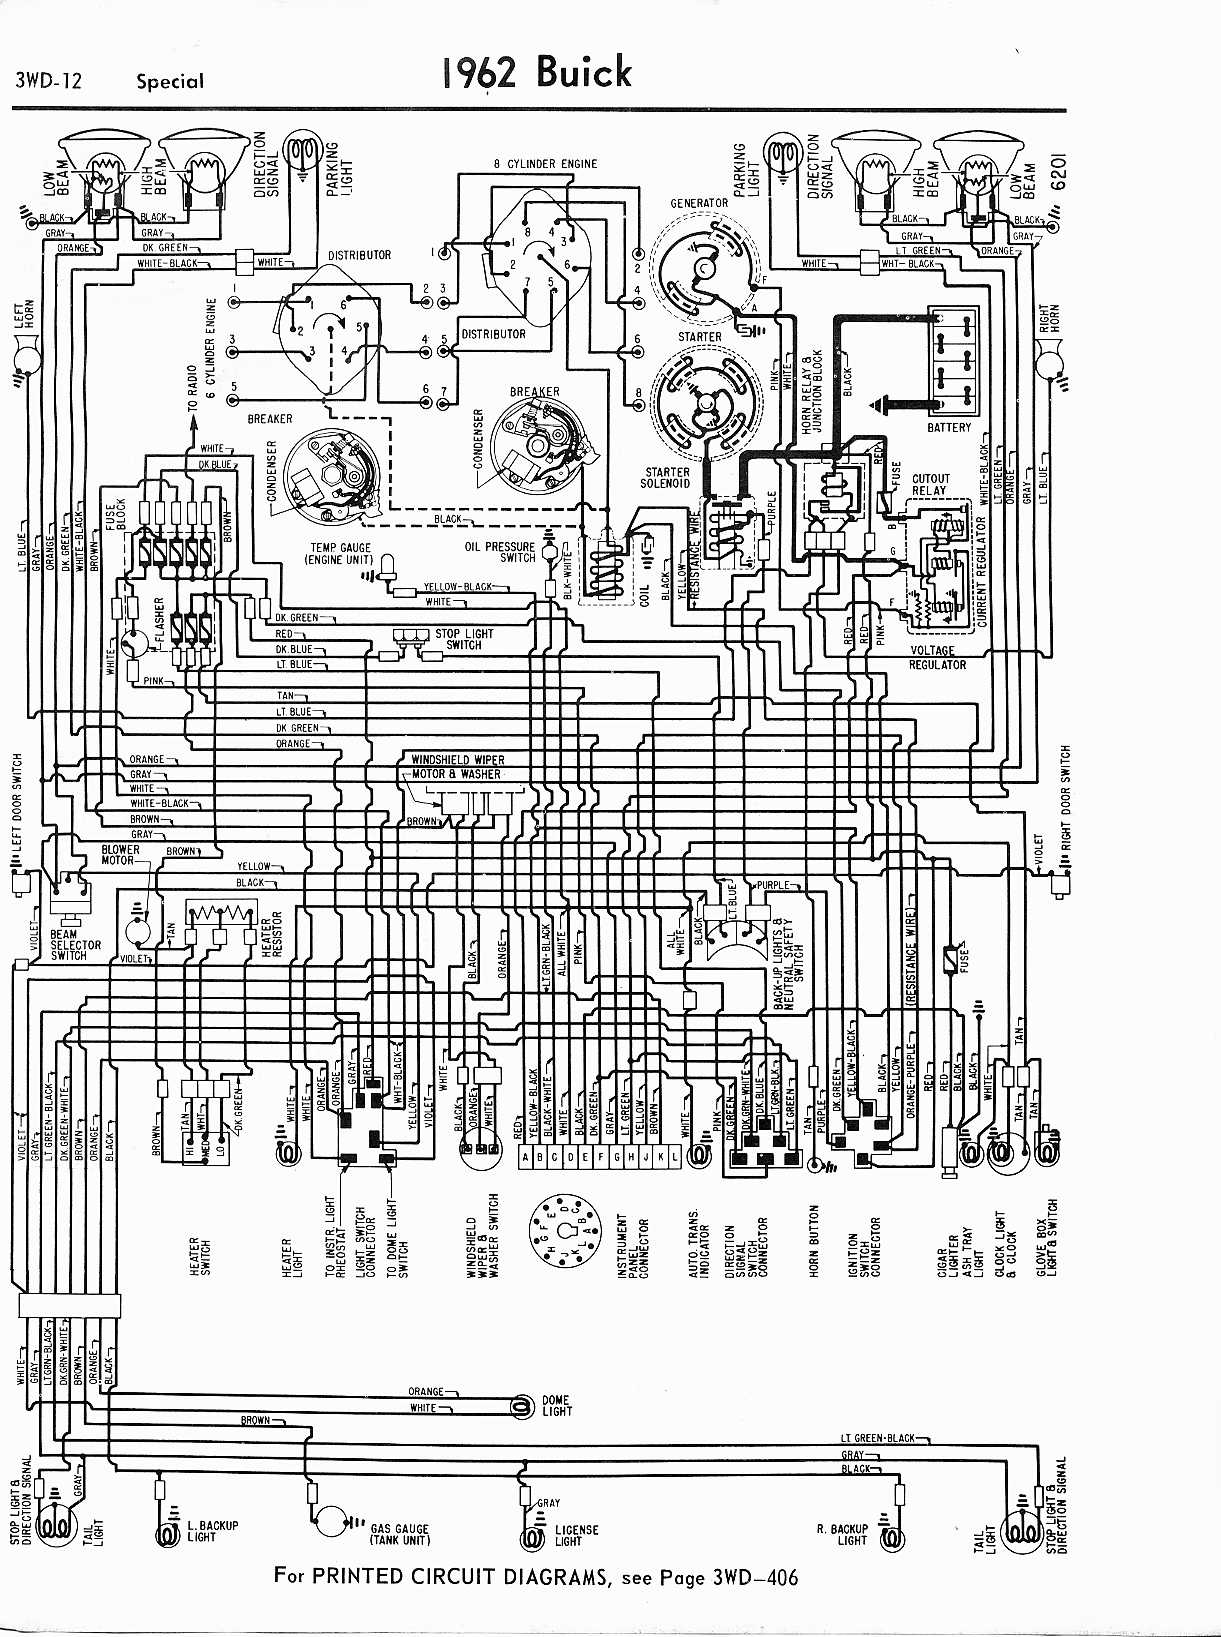 hight resolution of buick wiring diagrams 1957 1965 arctic cat wildcat wiring diagram 1962 lesabre wildcat